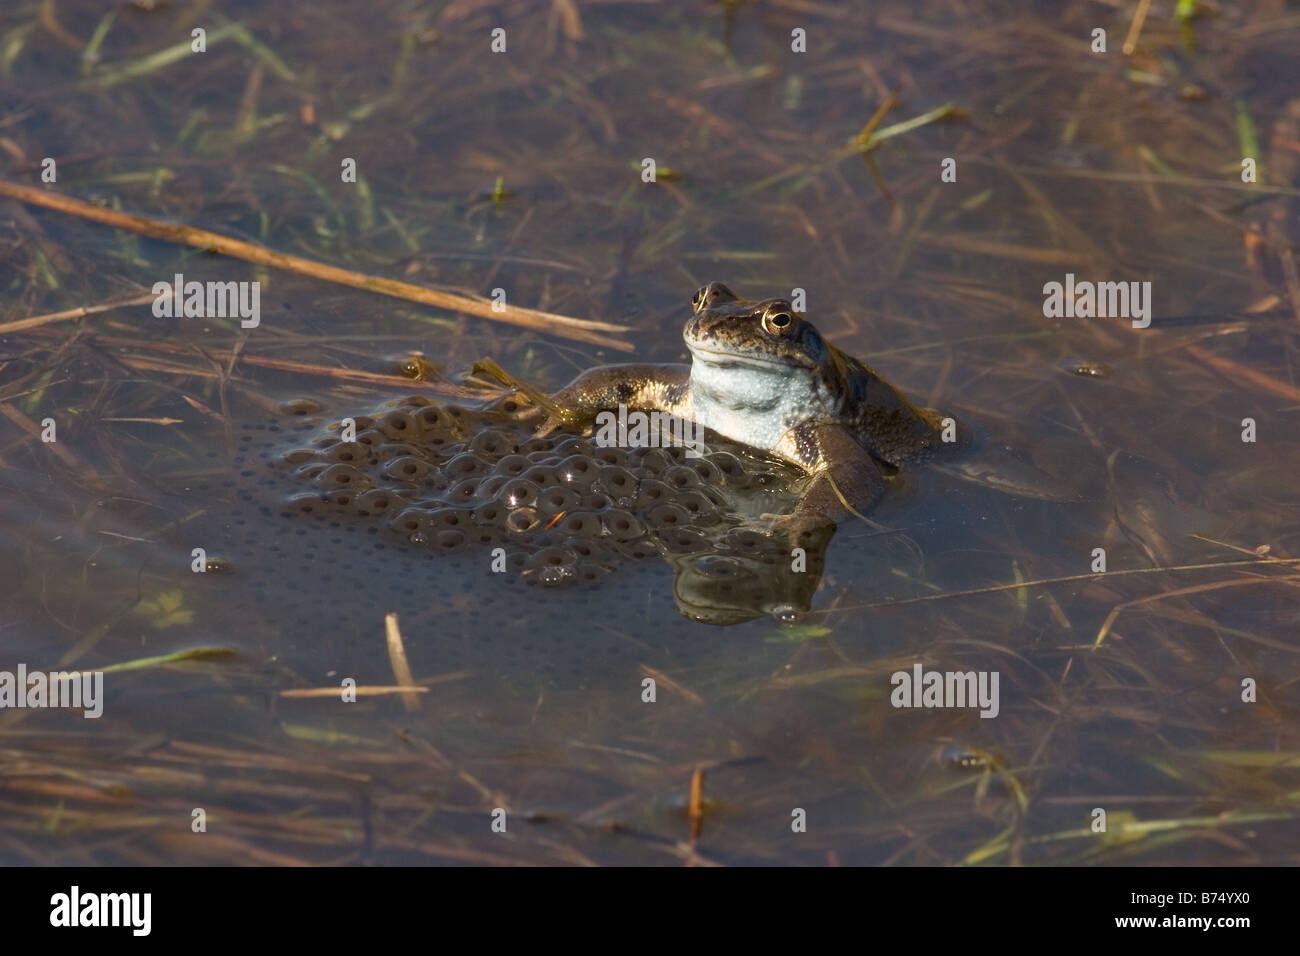 Common Frog, Rana temporaria adult with eggs - Stock Image